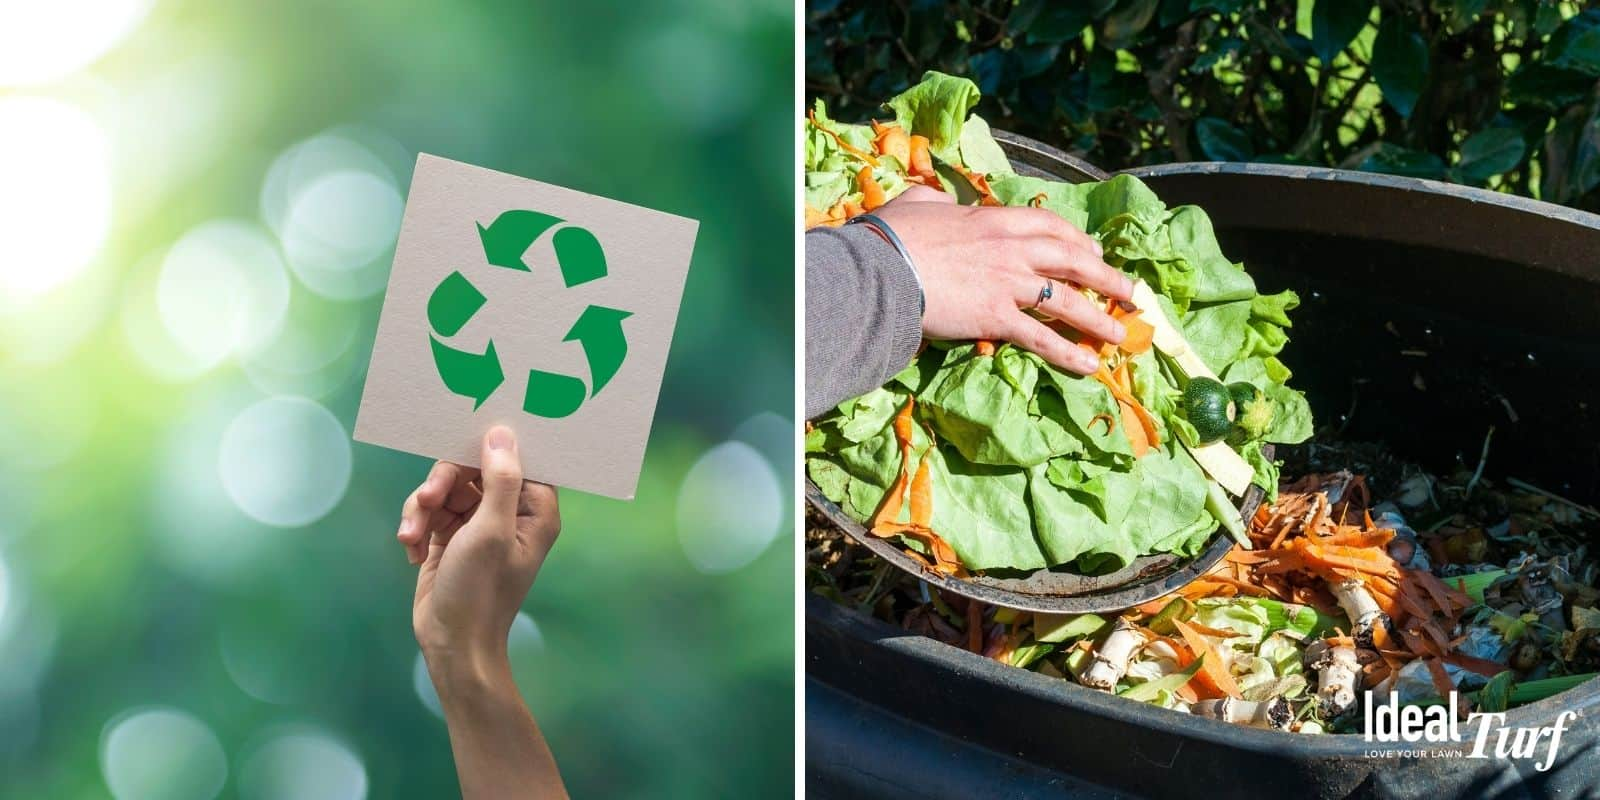 Start Recycling & Composting